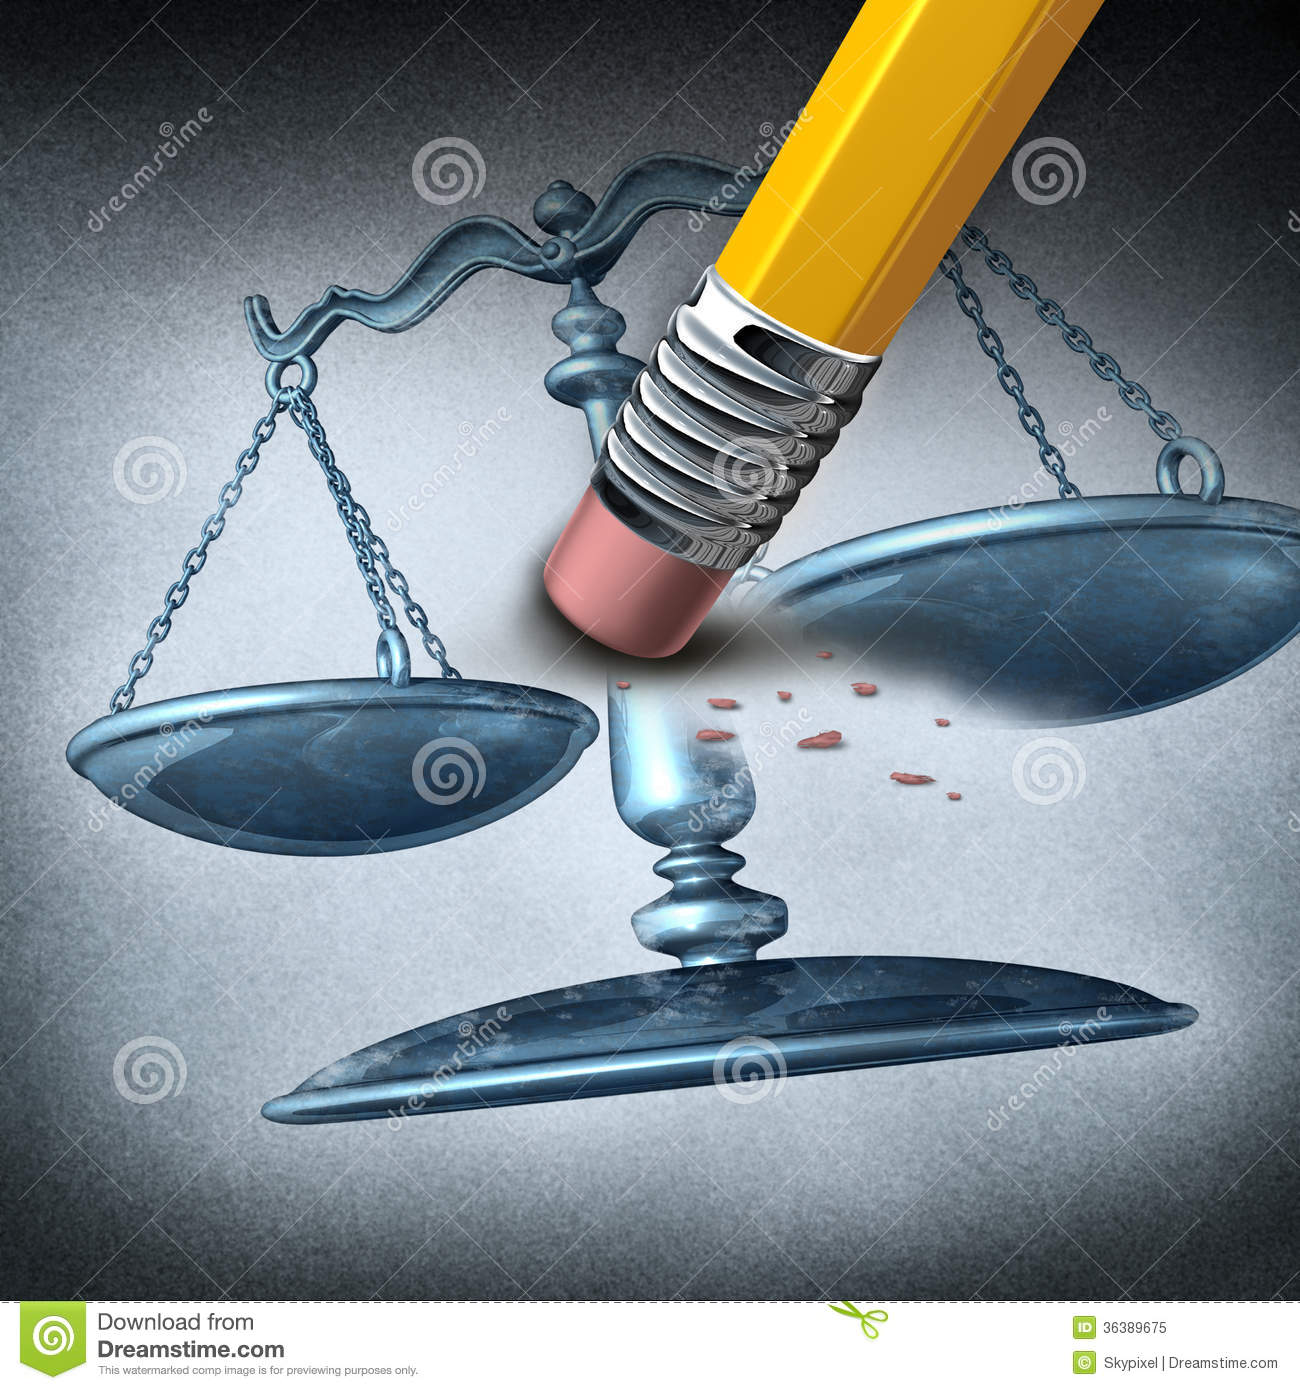 Justice and injustice in the state of nature essay